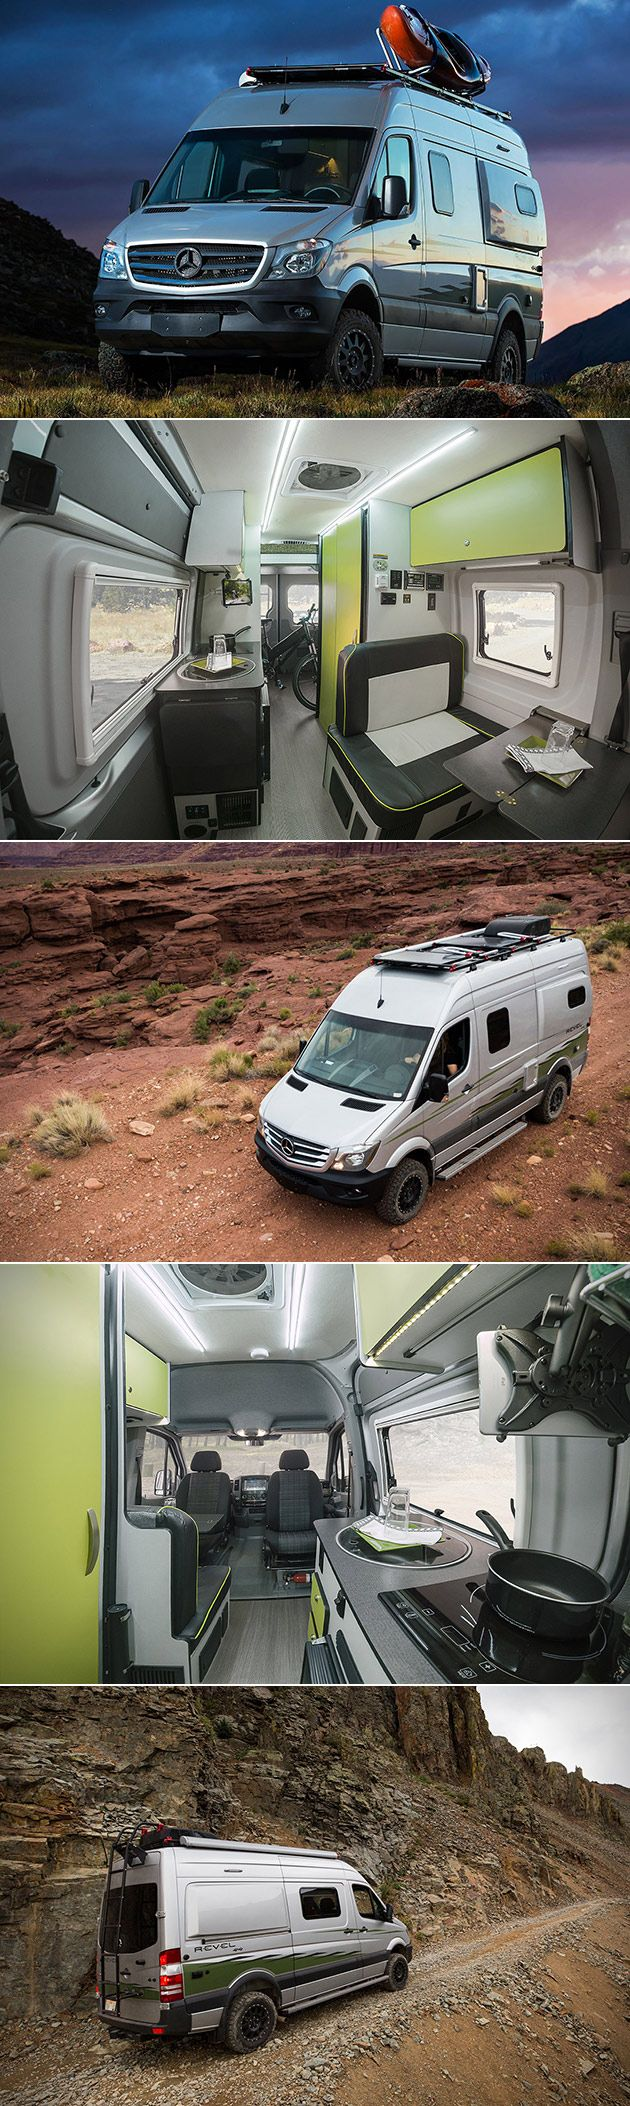 In Case of Zombie Apocalypse You'll Want to Roll in a Winnebago Revel a Solar Home on Wheels